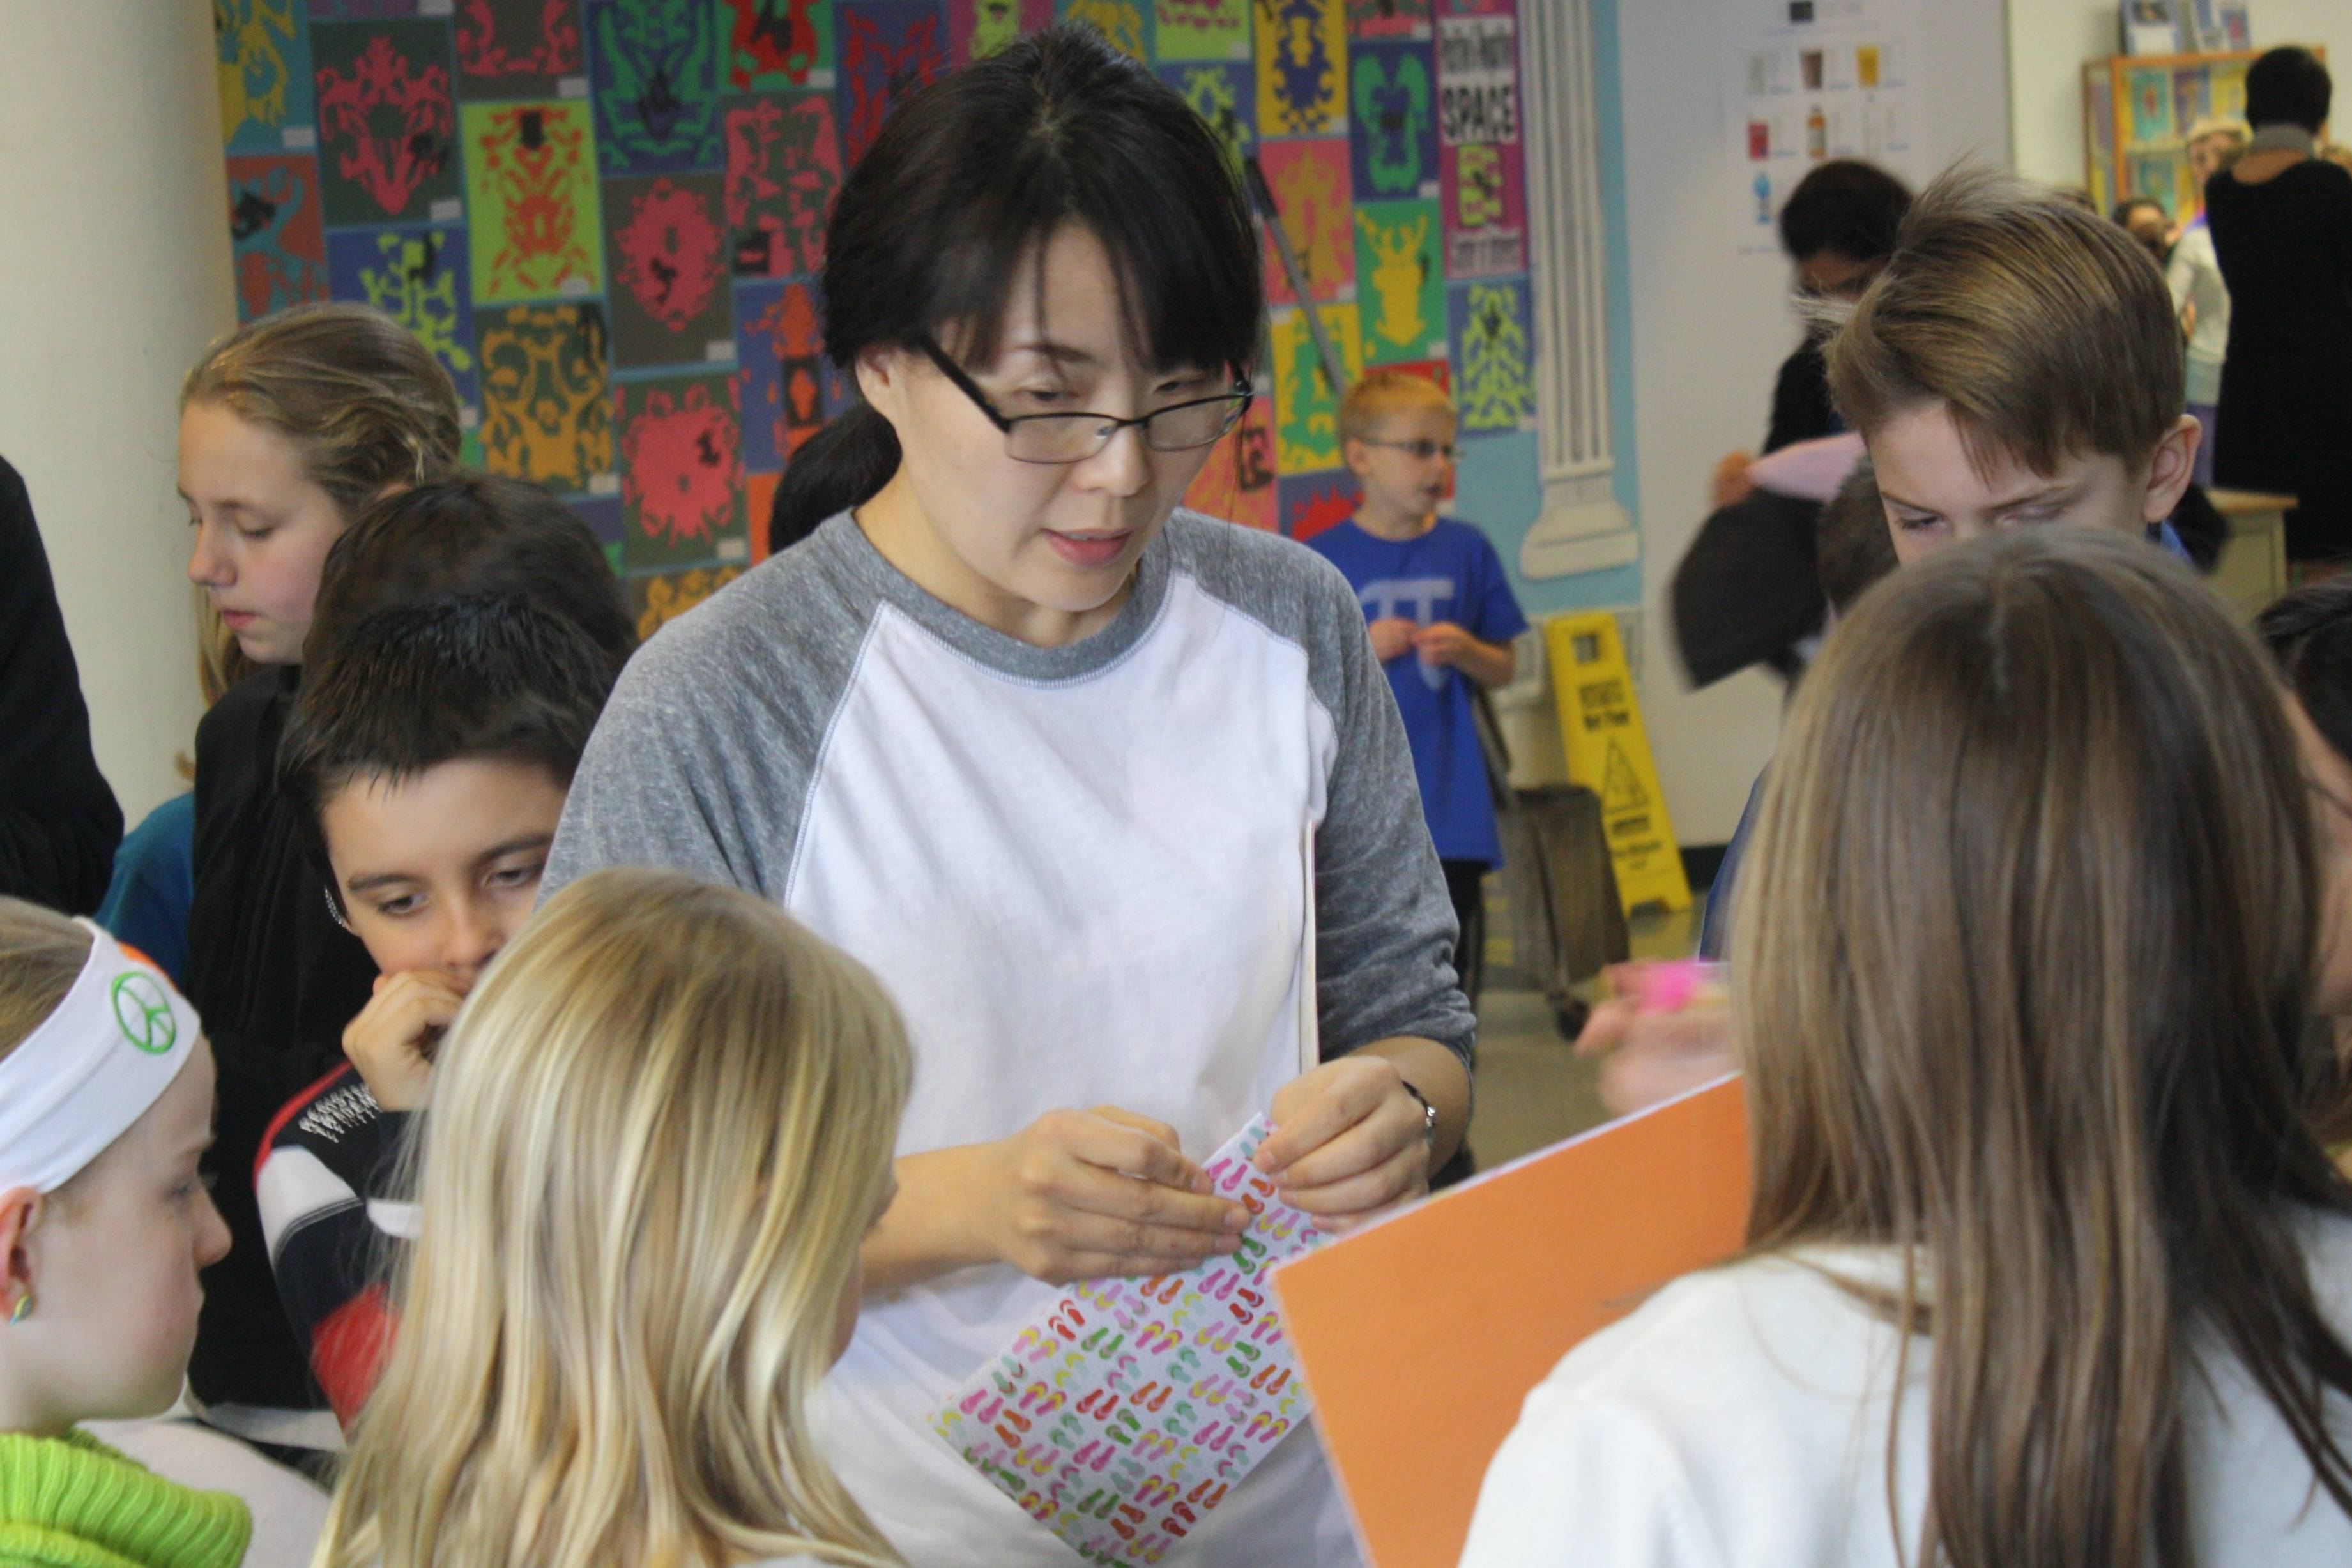 A student from Harper College's Intensive English program shows elementary school students how to make the Korean game Ddakji.